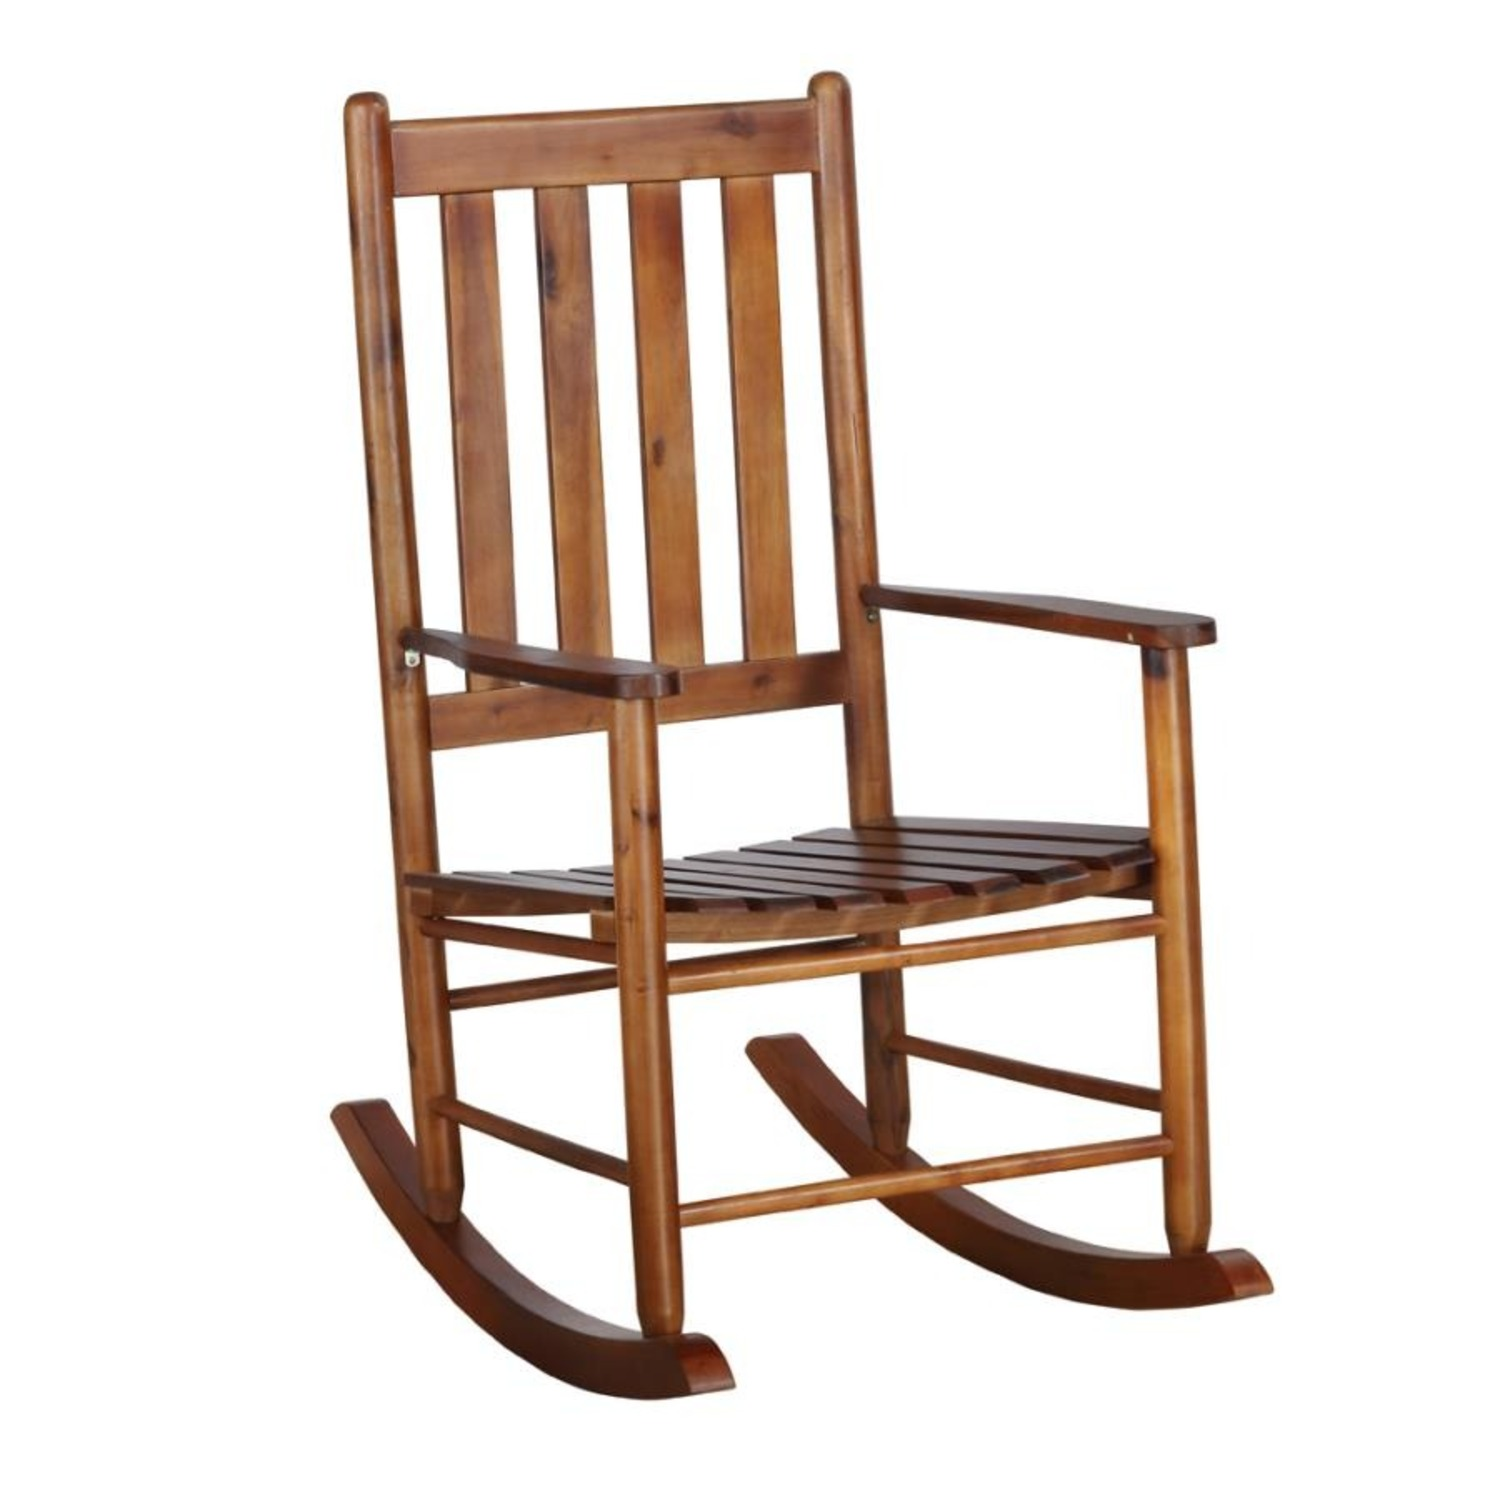 Rocking Chair In Golden Brown Solid Acacia Finish - image-0